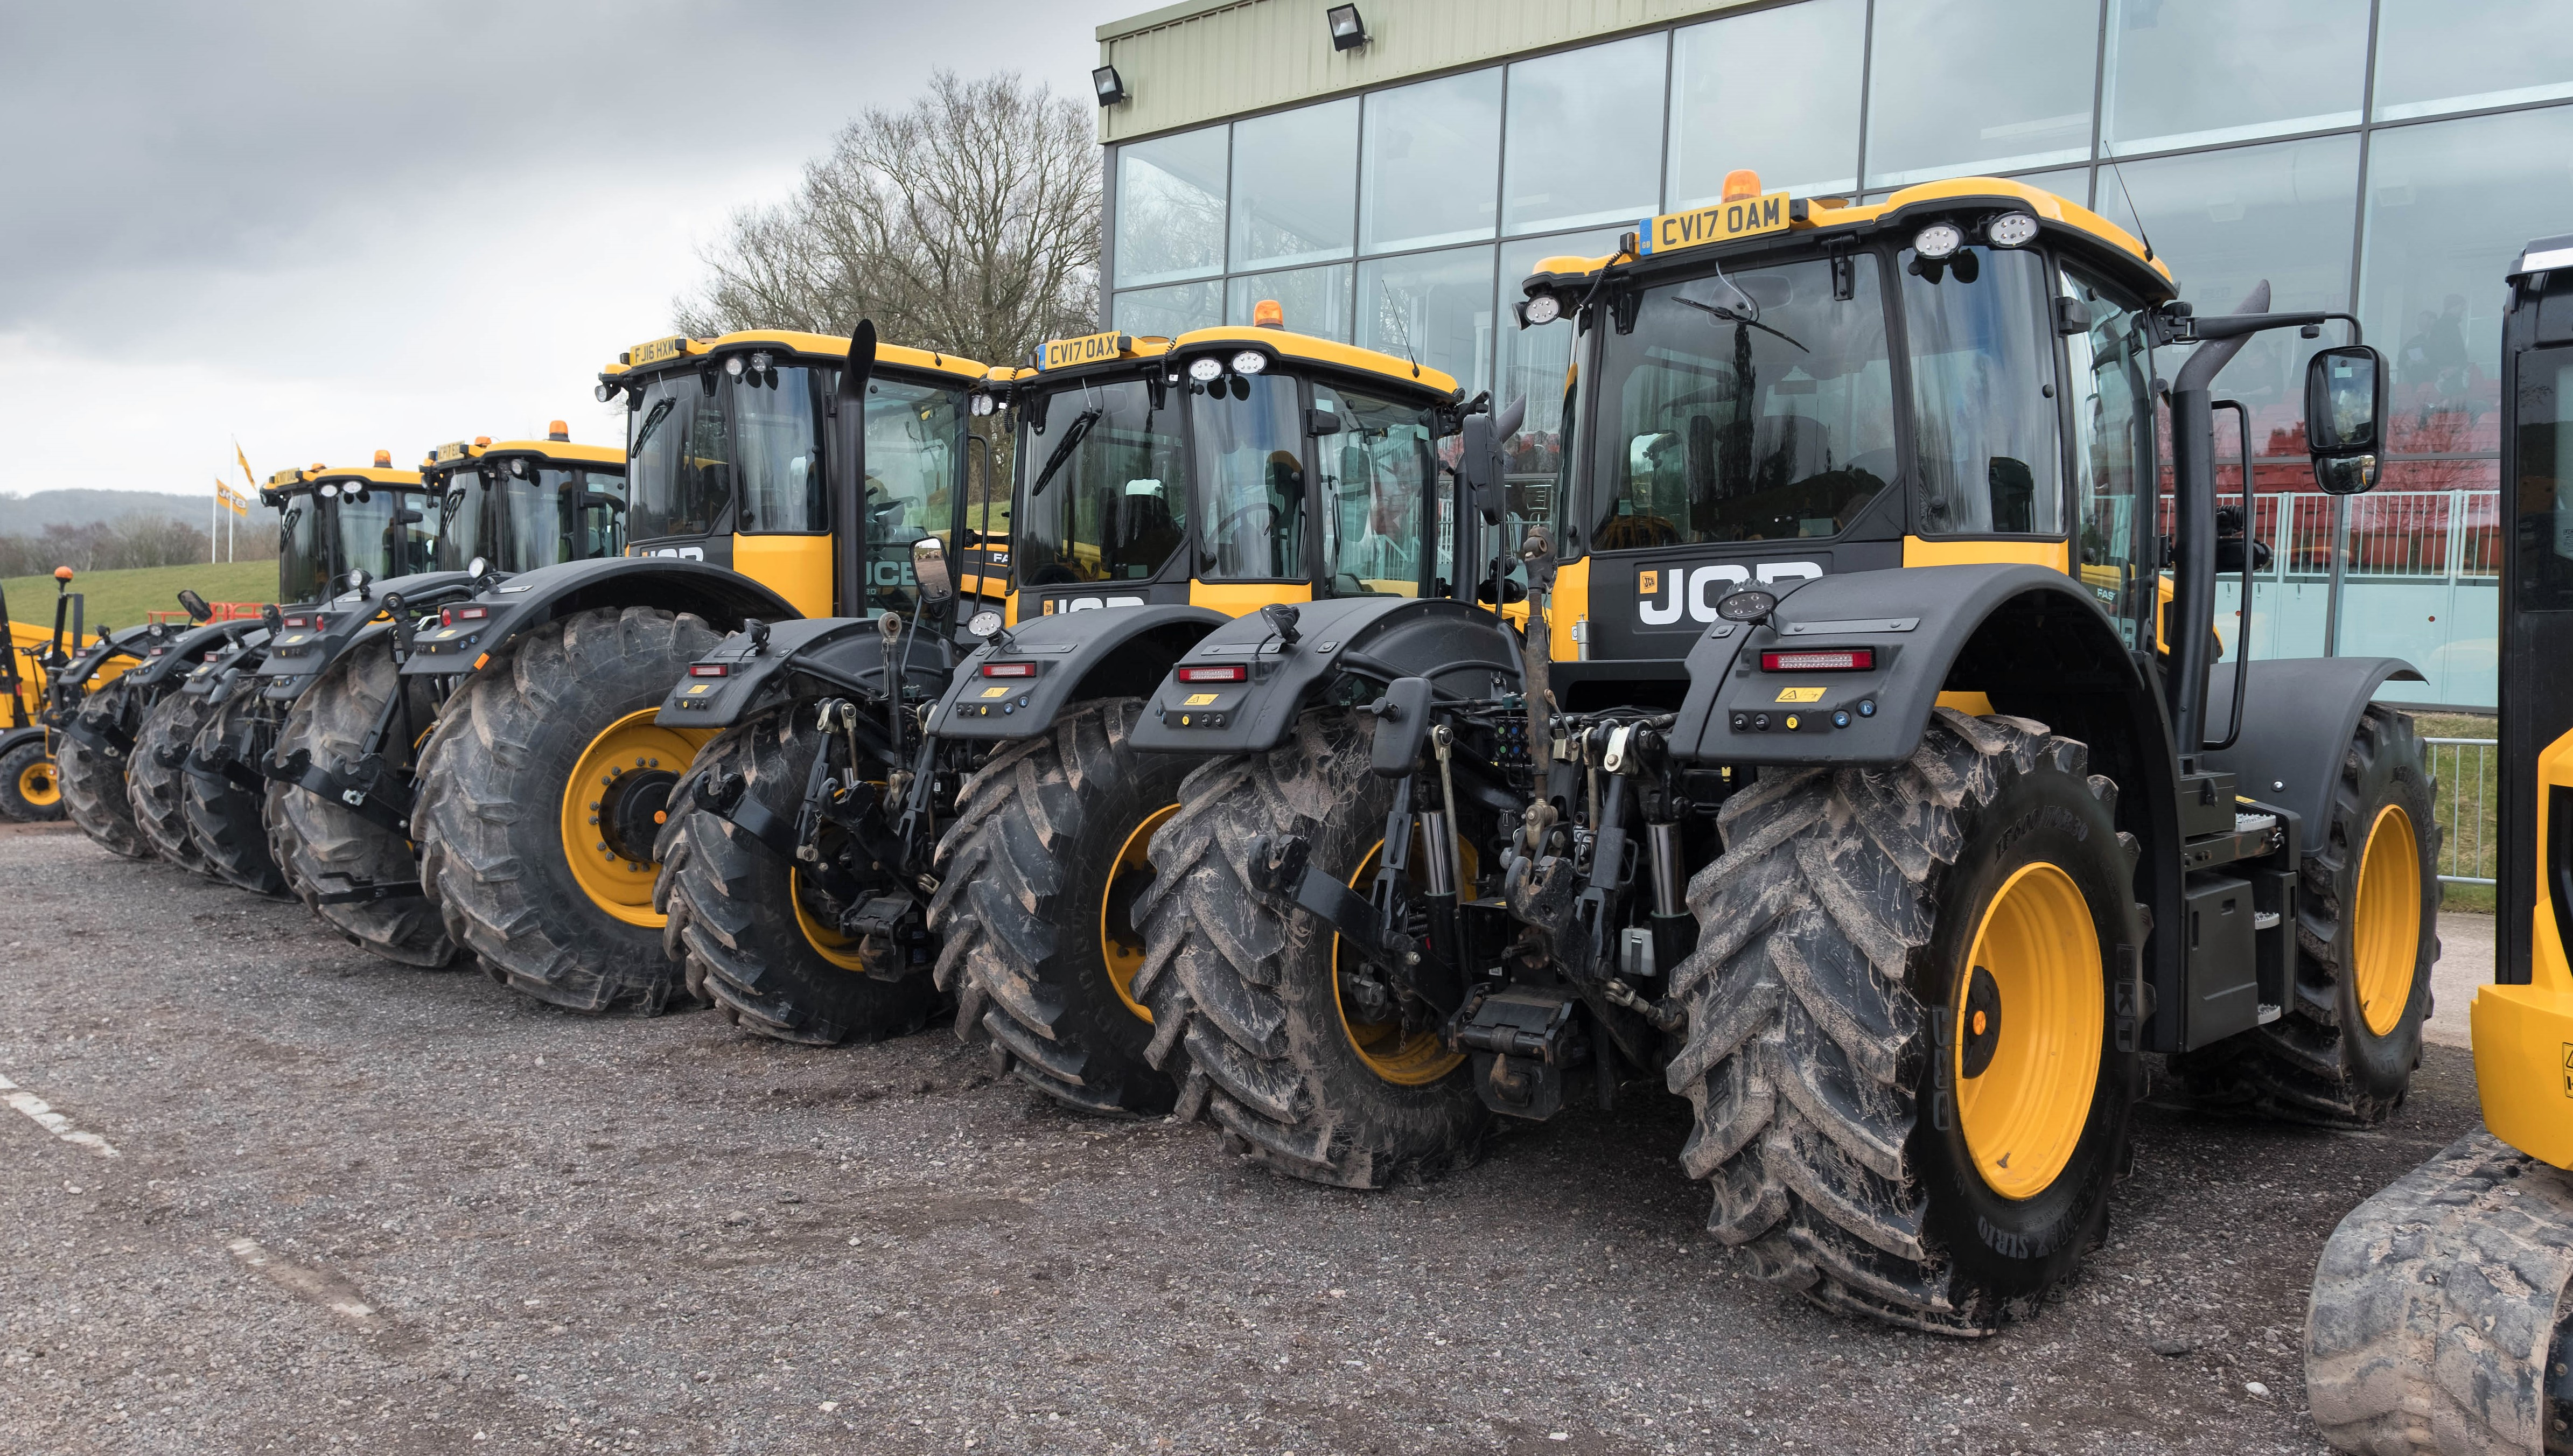 jcb report Jcb india ltd, ballabgarh (haryana) is india's largest manufacturer of  construction equipment and a fully owned subsidiary of jc bamford excavators  limited,.